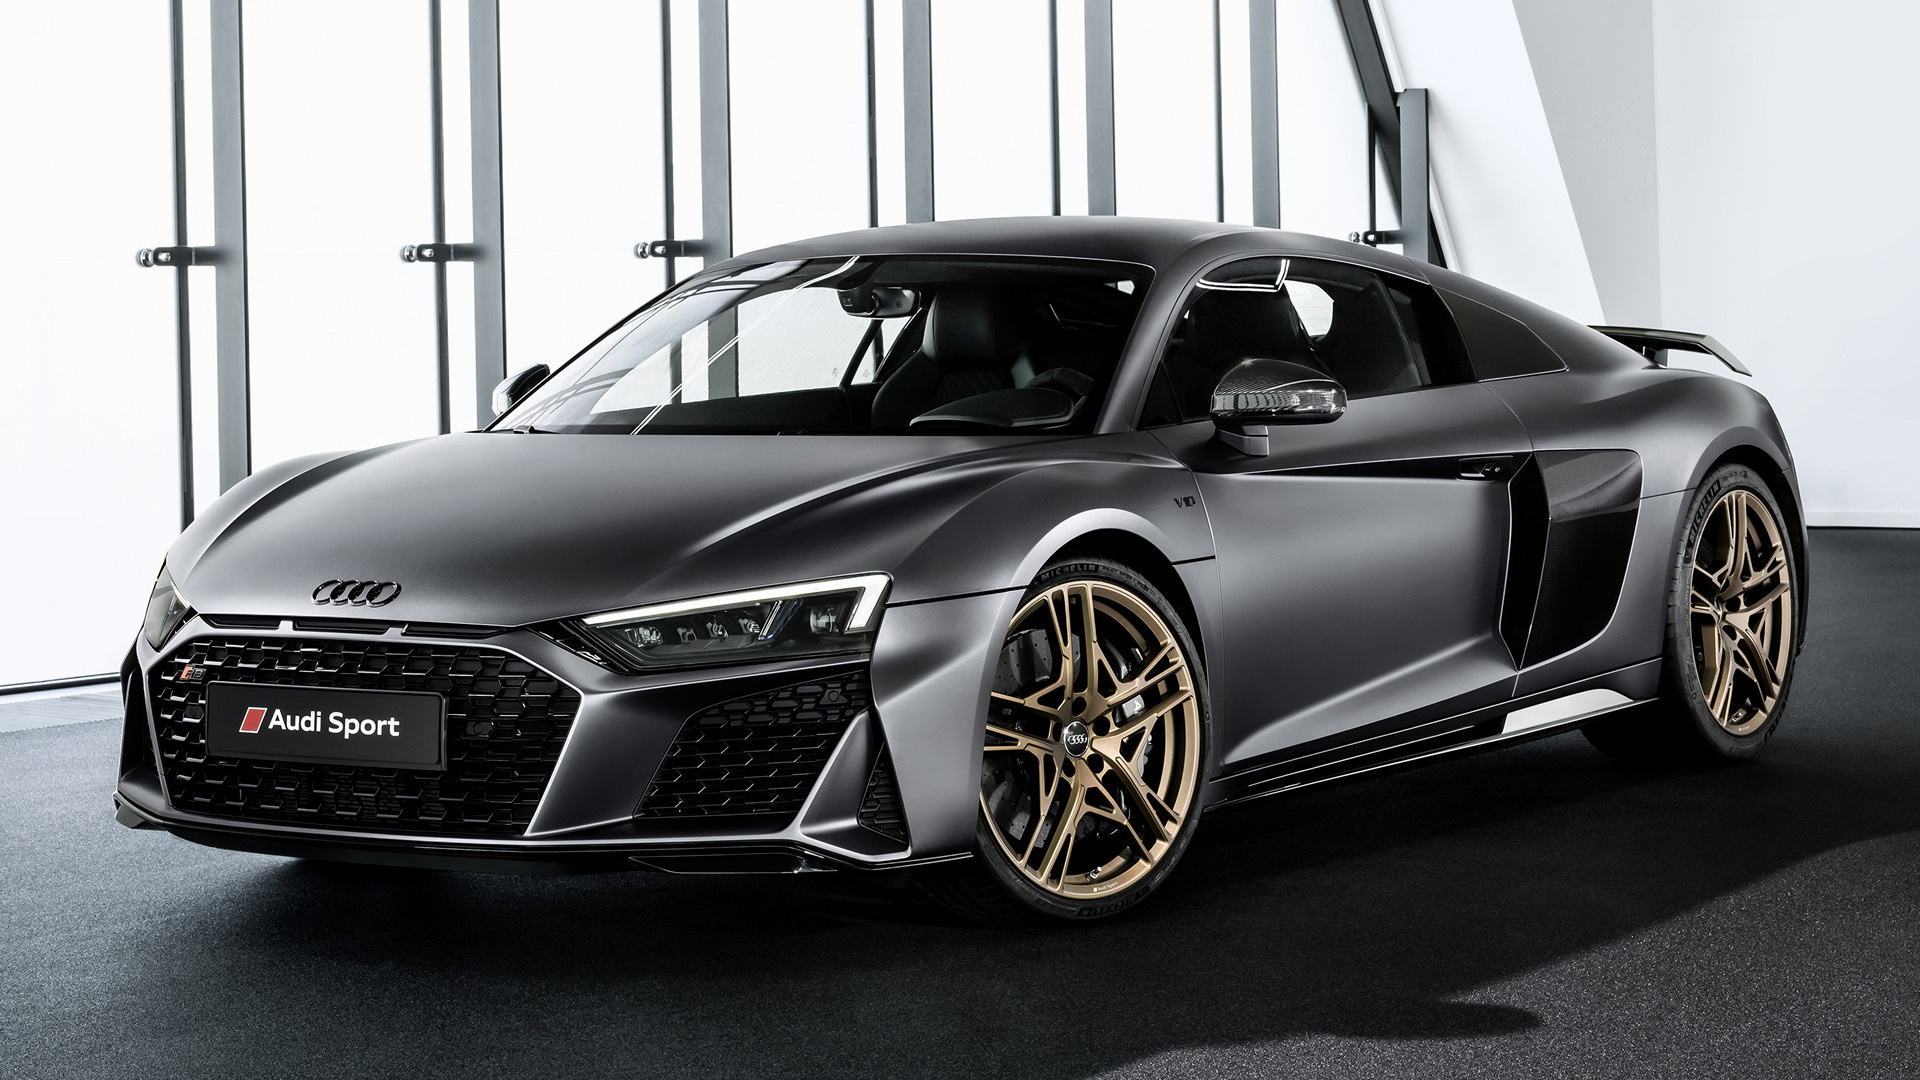 2019 Audi R8 Coupe Decennium - Wallpapers and HD Images ...